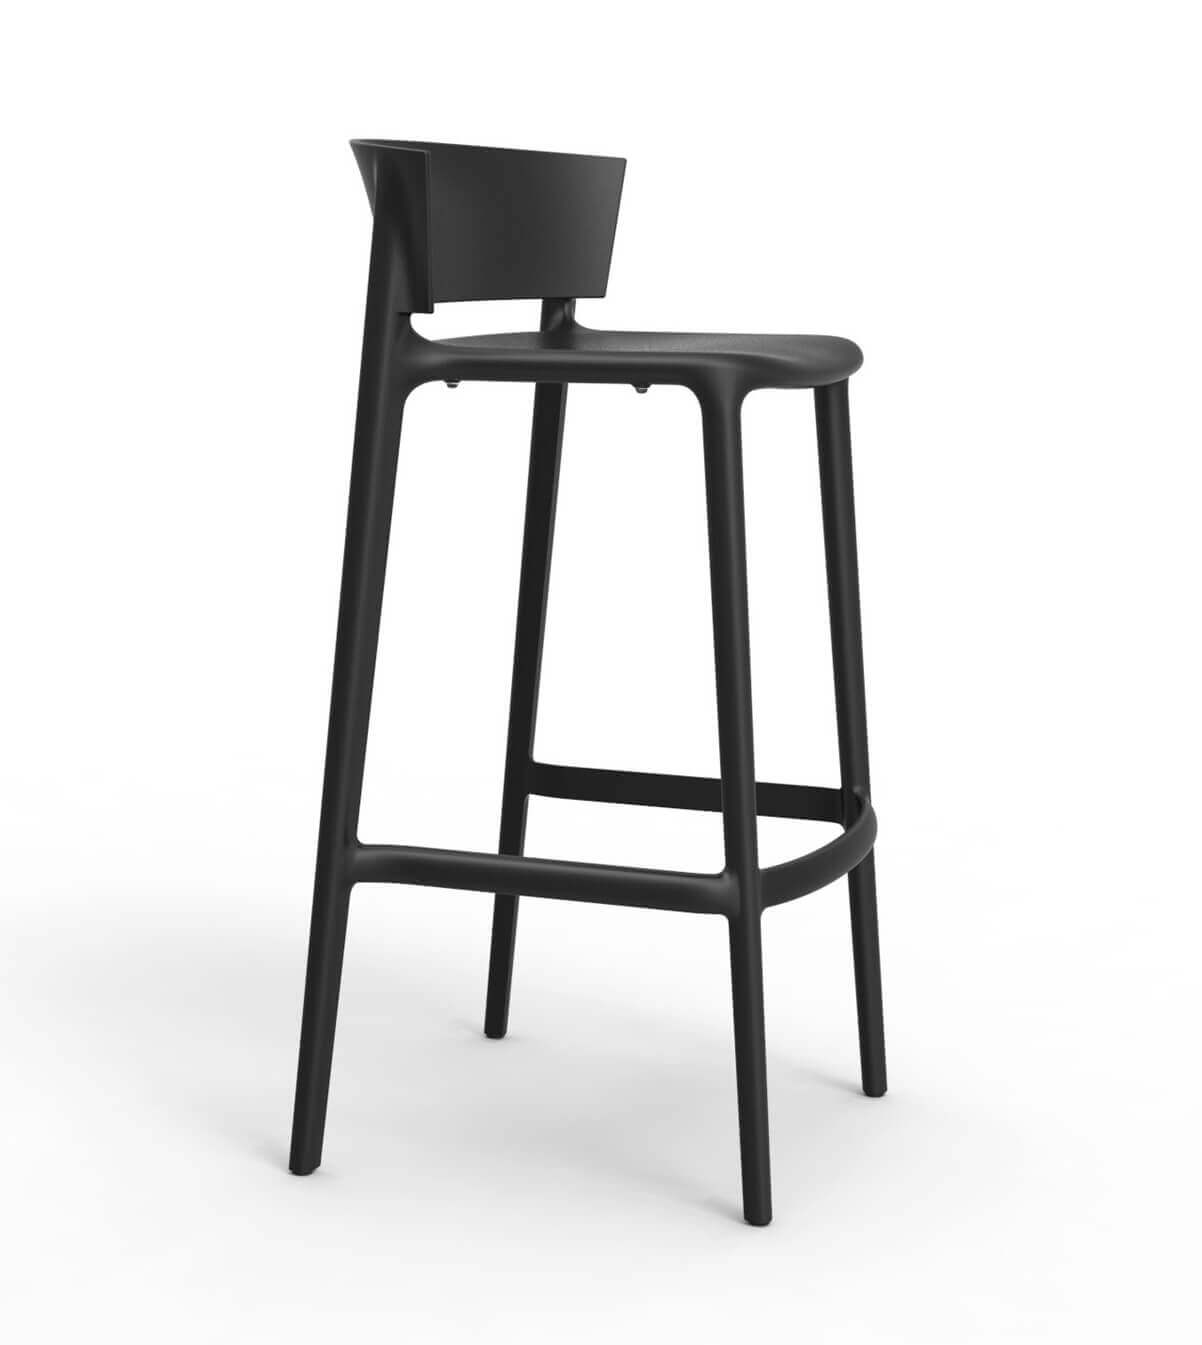 Designer High Chair Outdoor High Stool